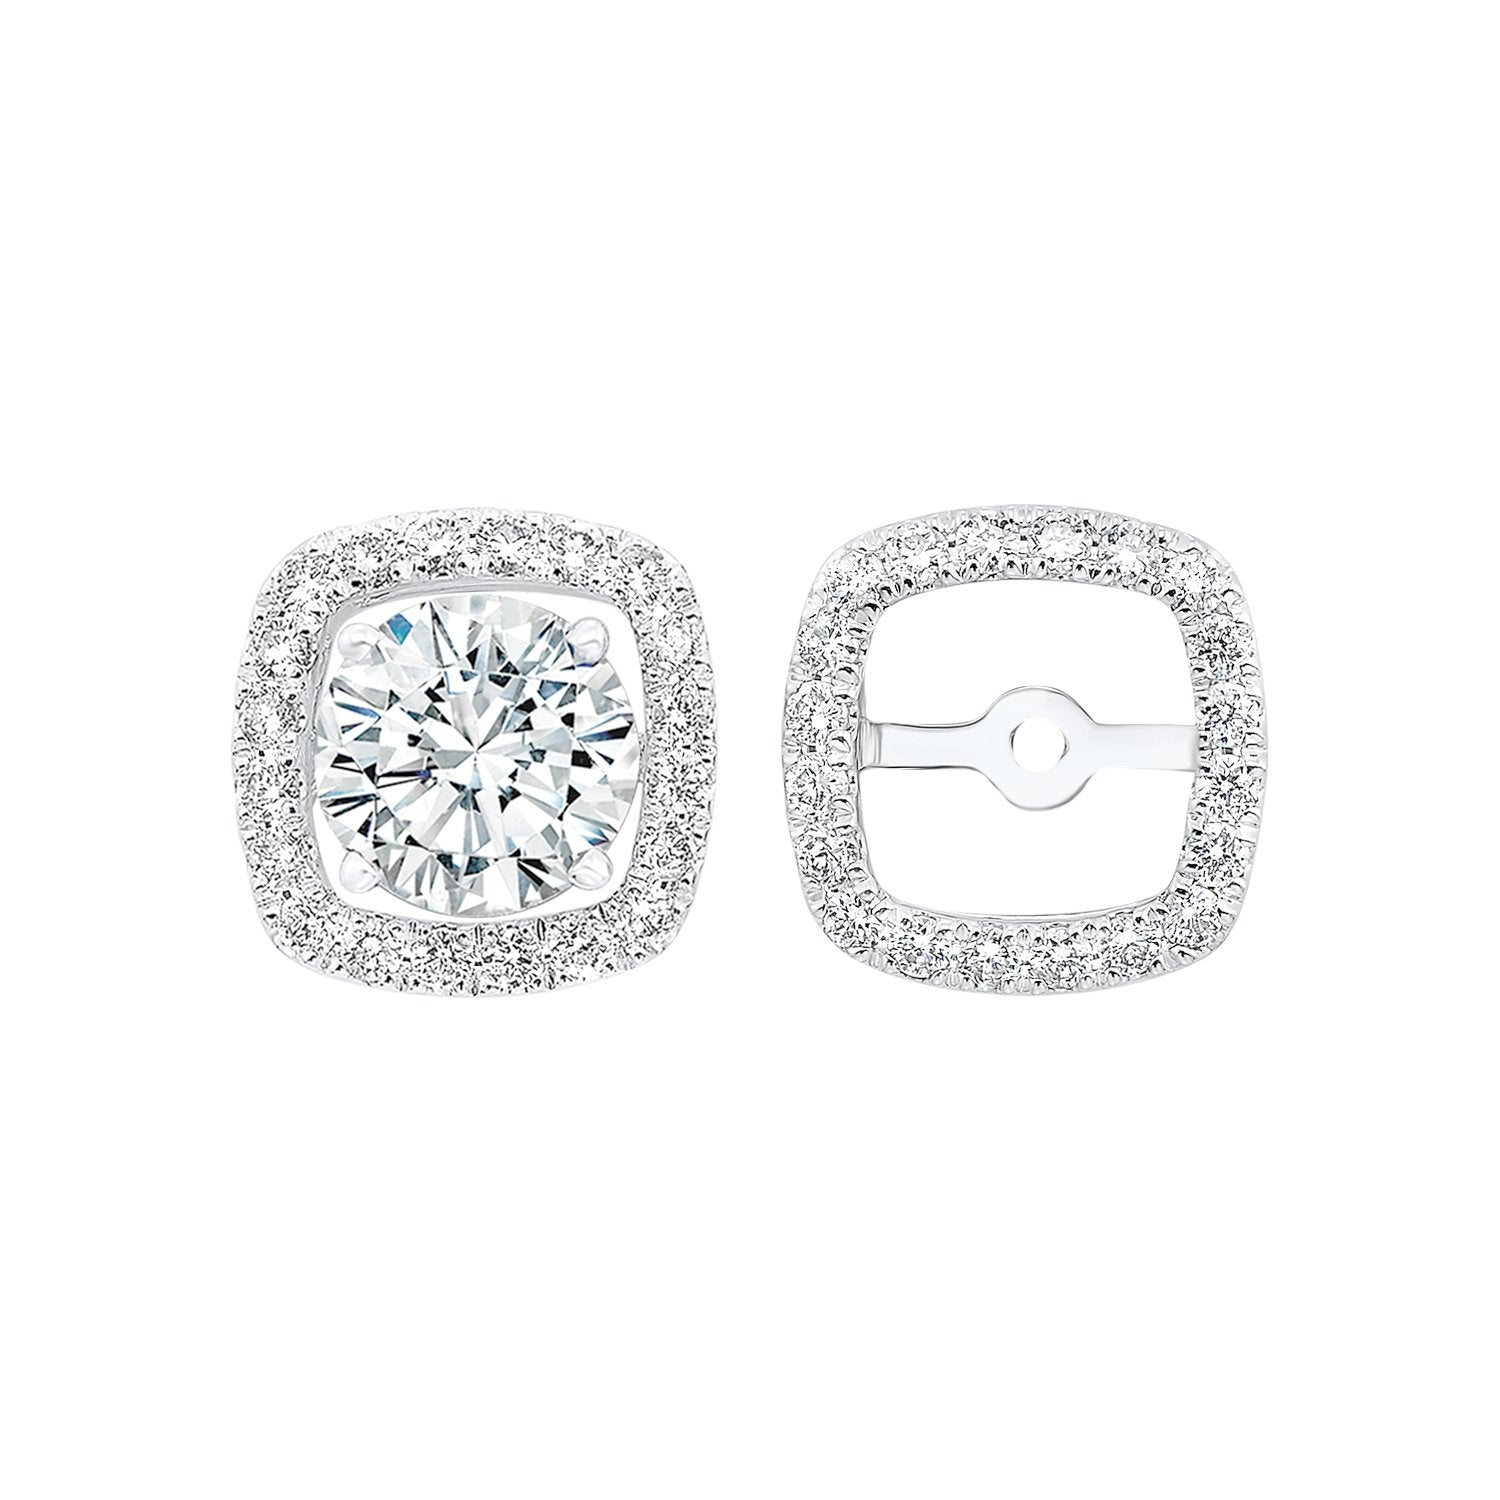 Micro Prong Diamond Halo Jacket Earrings in 14K White Gold (1/3 ct. tw.)